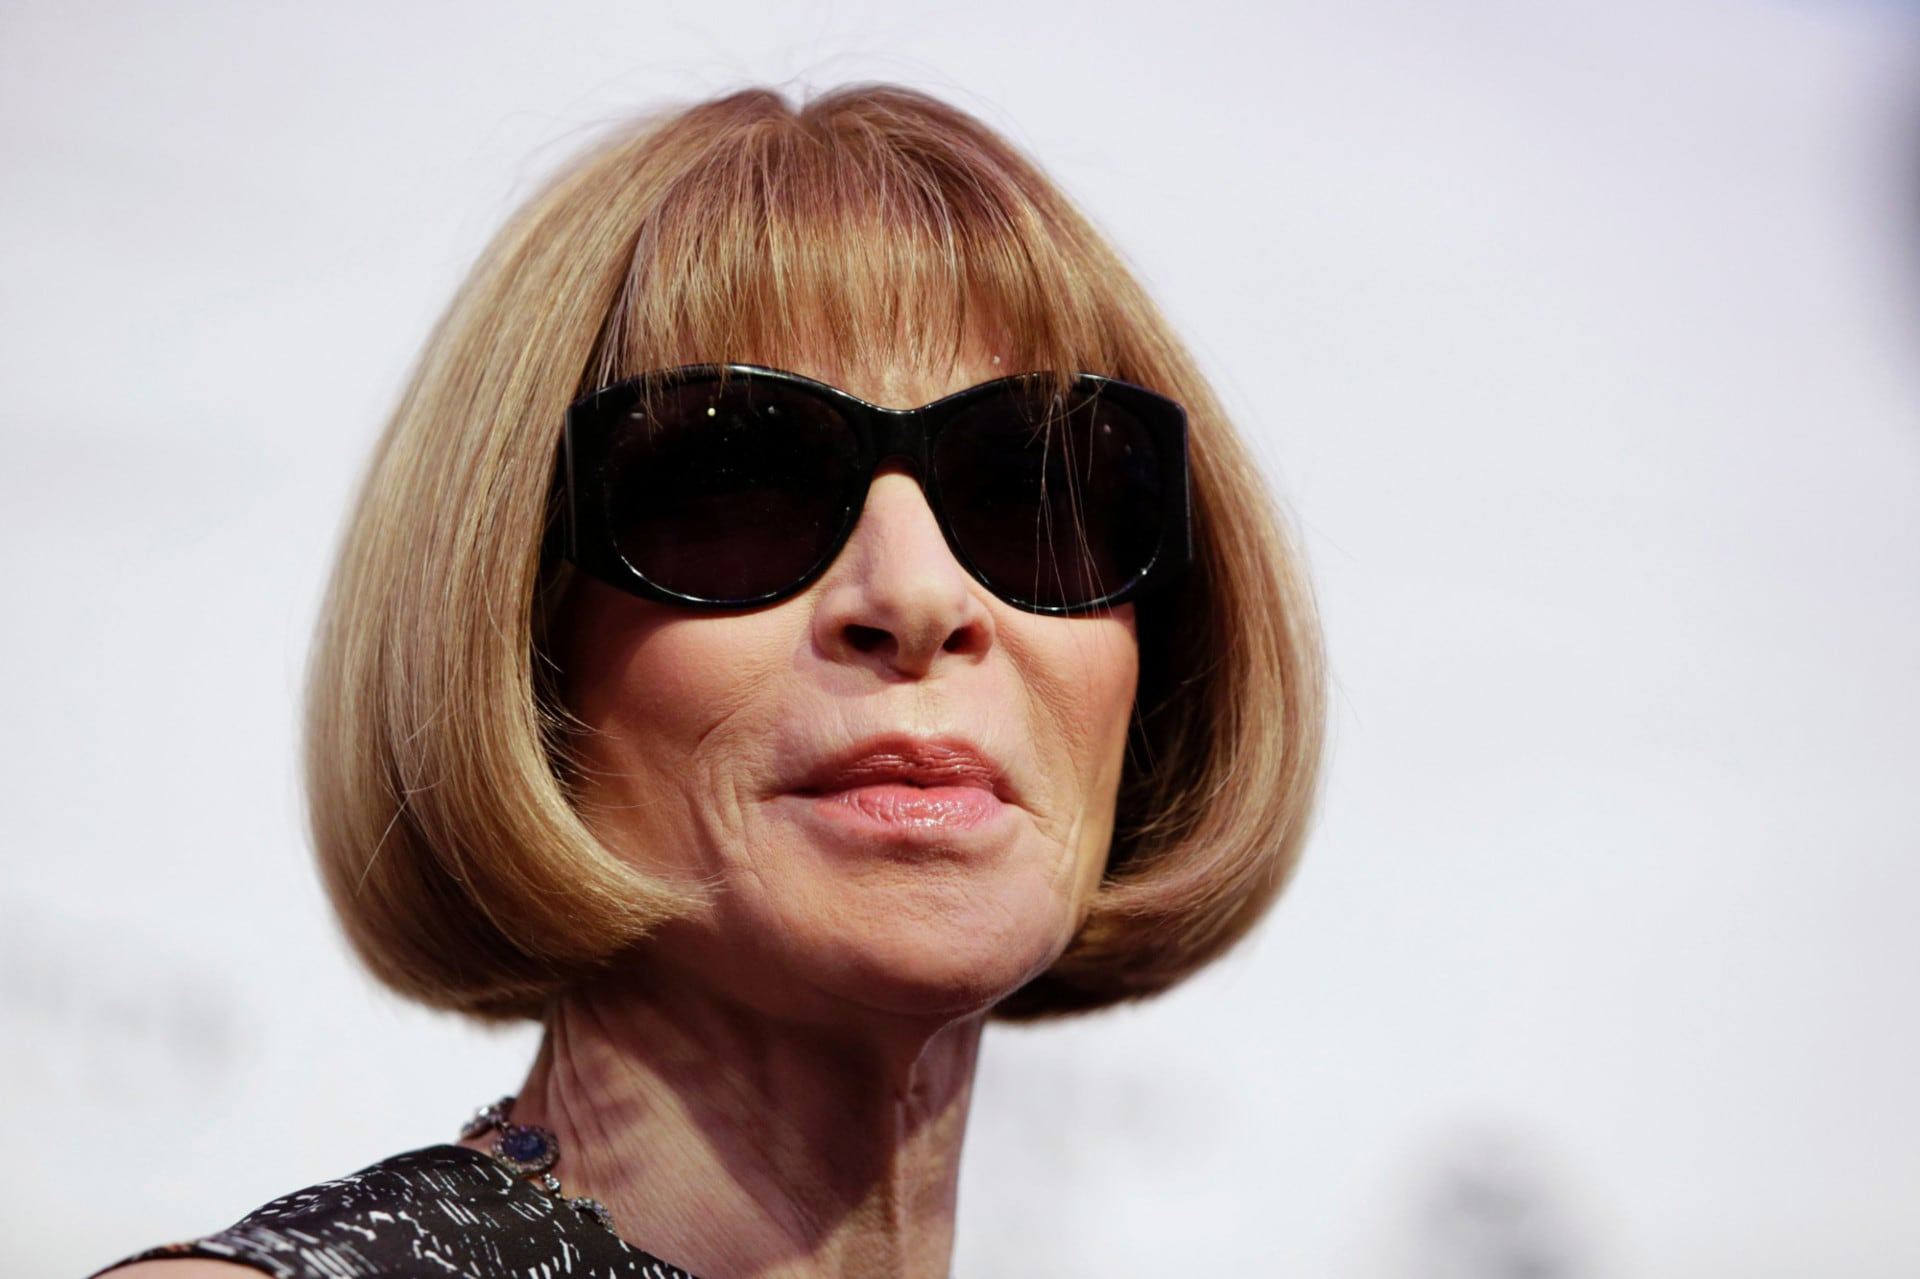 Anna Wintour was once fired from her styling job, says it was character building